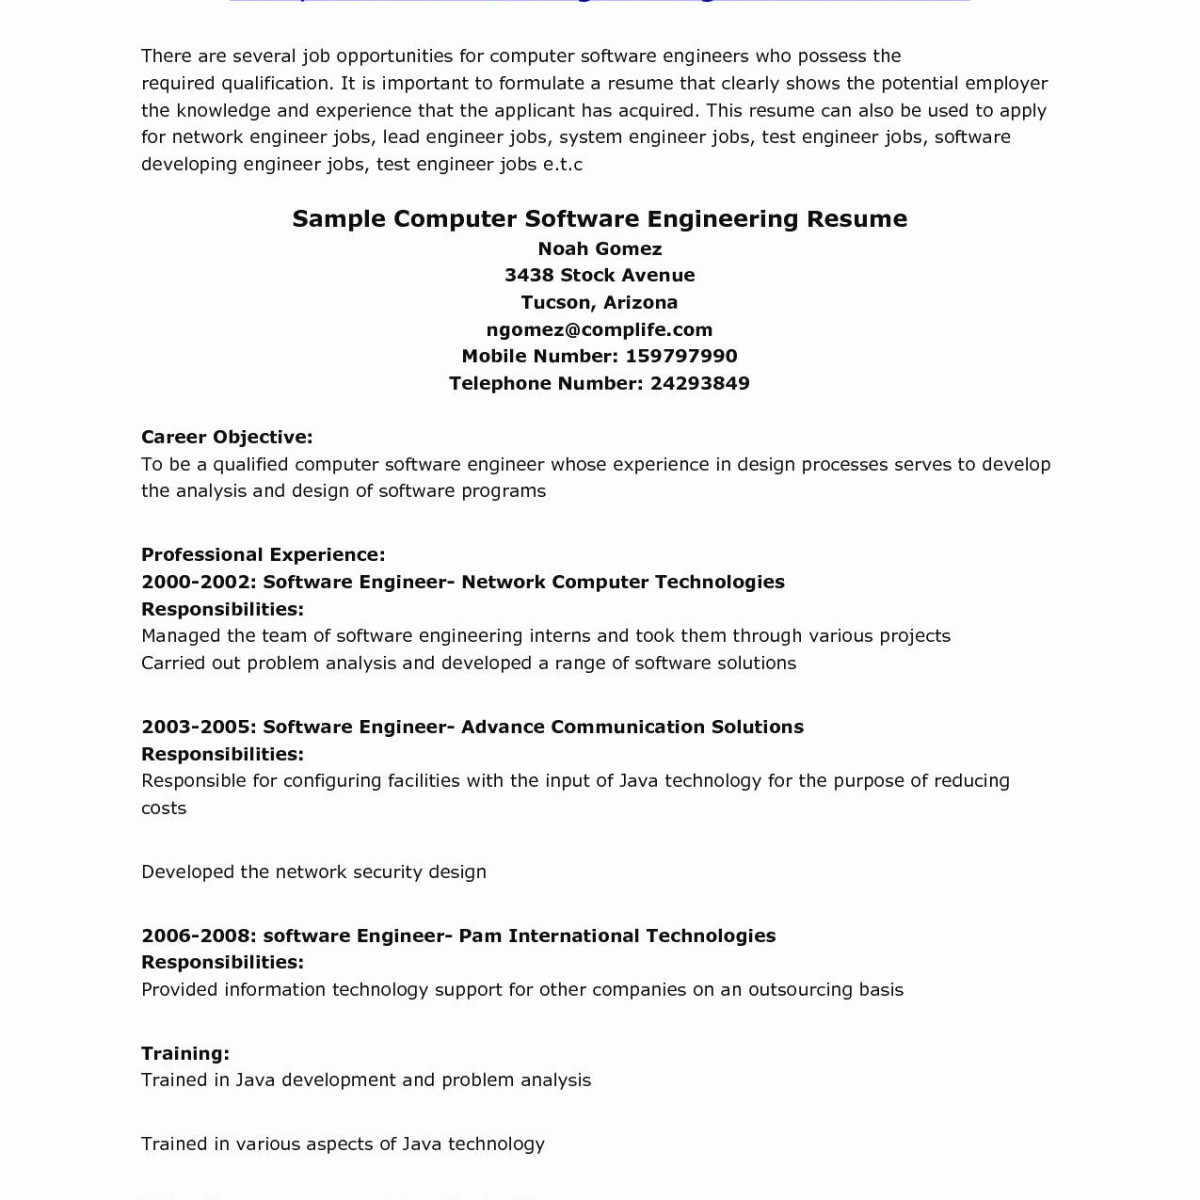 Computer Engineer Resume Template - Resume Document Cute Resume format Doc Unique Fresh Resume Template